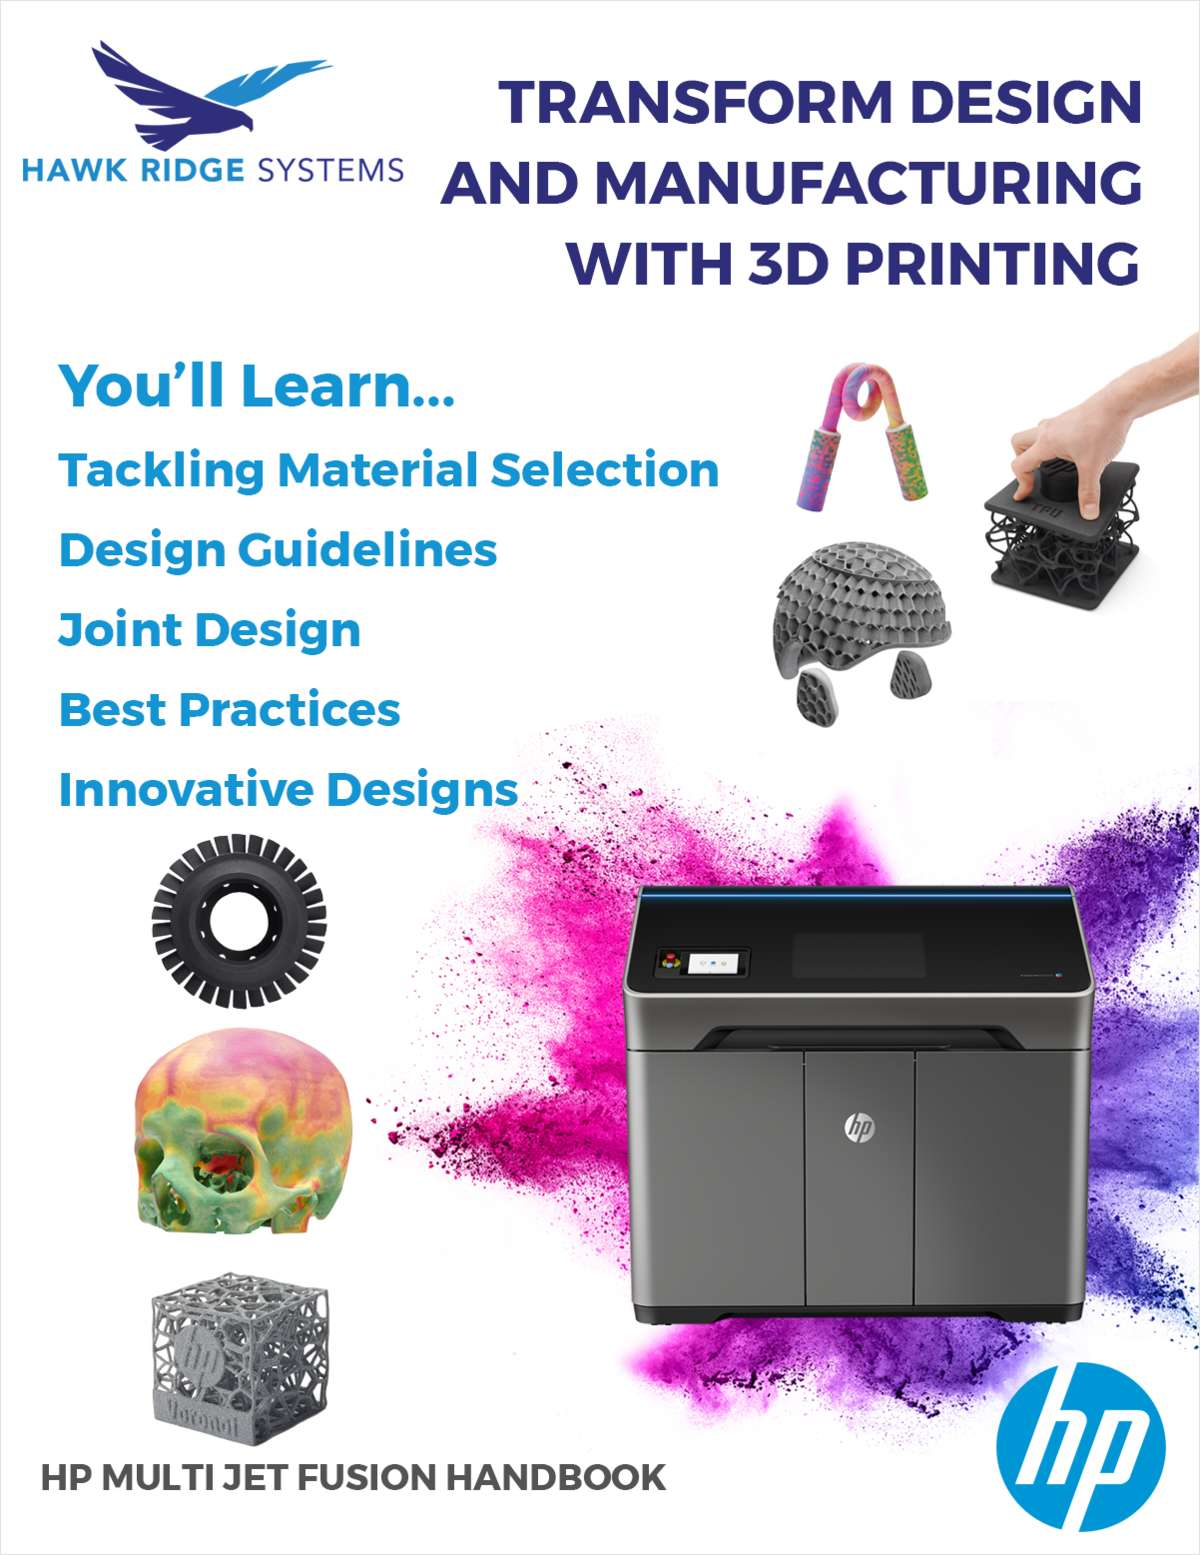 Transform Design & Manufacturing with 3D Printing